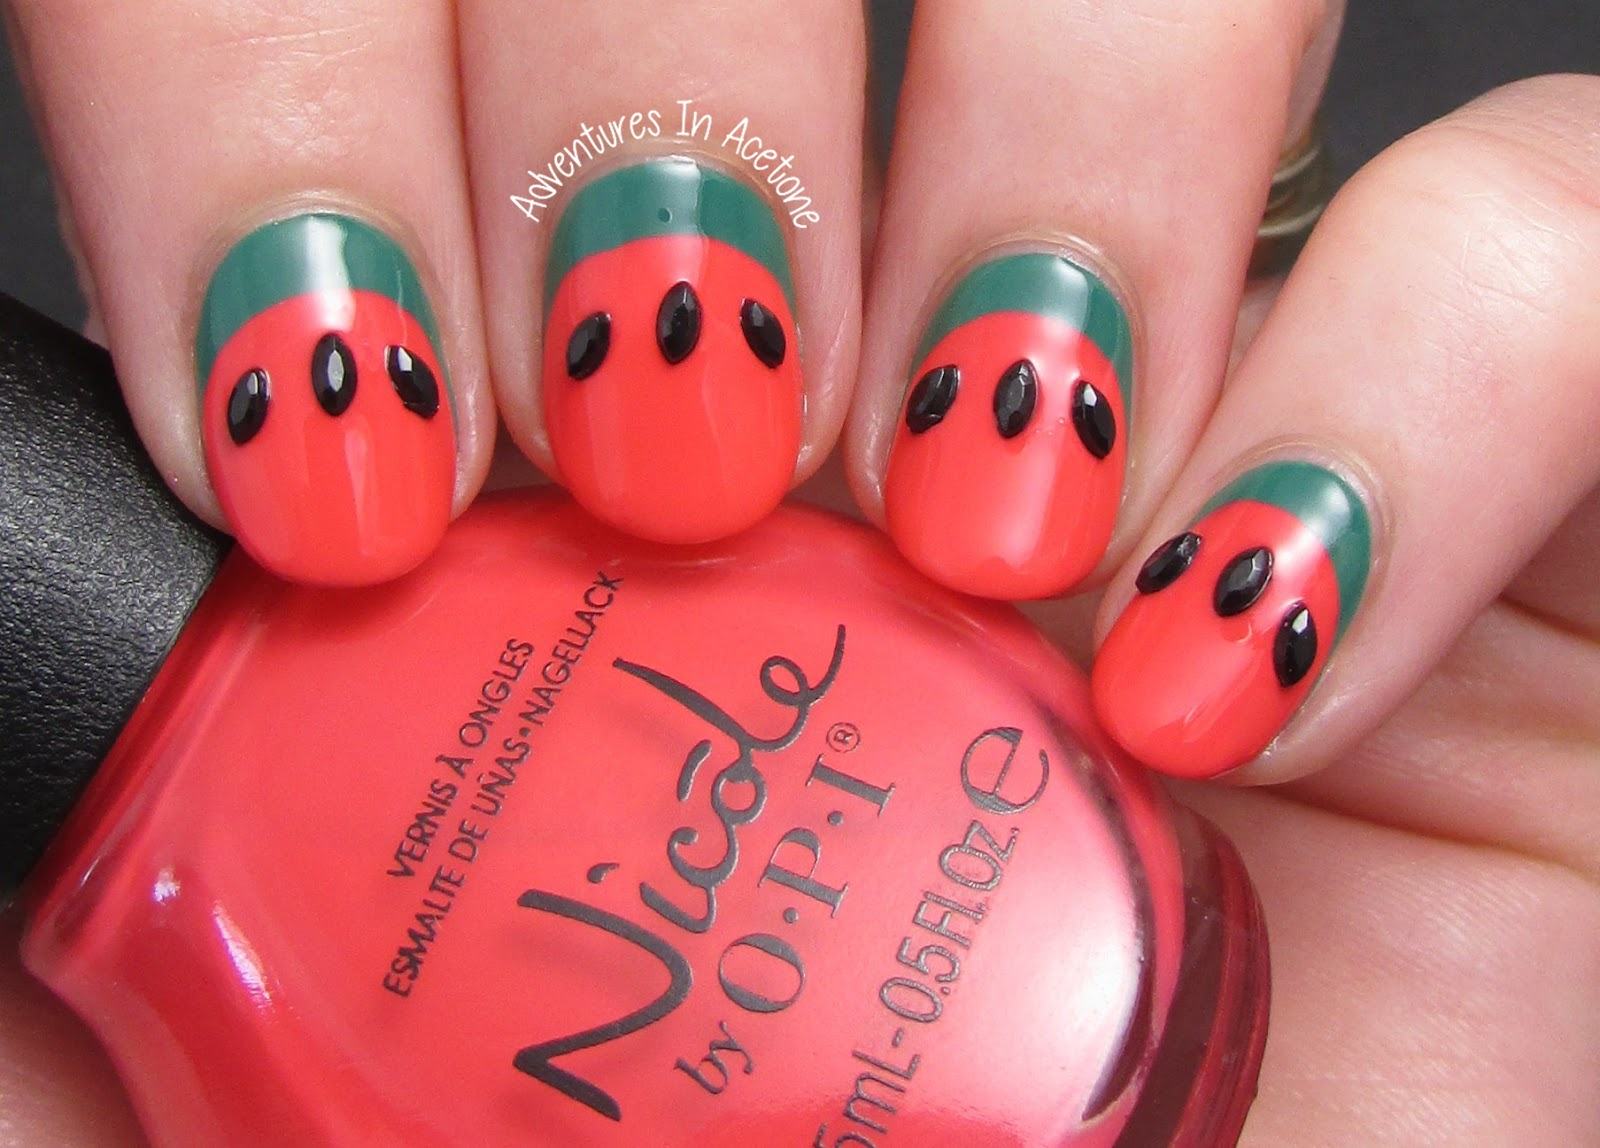 Simple ruffian watermelon nail art adventures in acetone this manicure is so simple and uses no nail art skills or tools just two different regular bottles of polish some seed shaped black nail art stones were prinsesfo Gallery